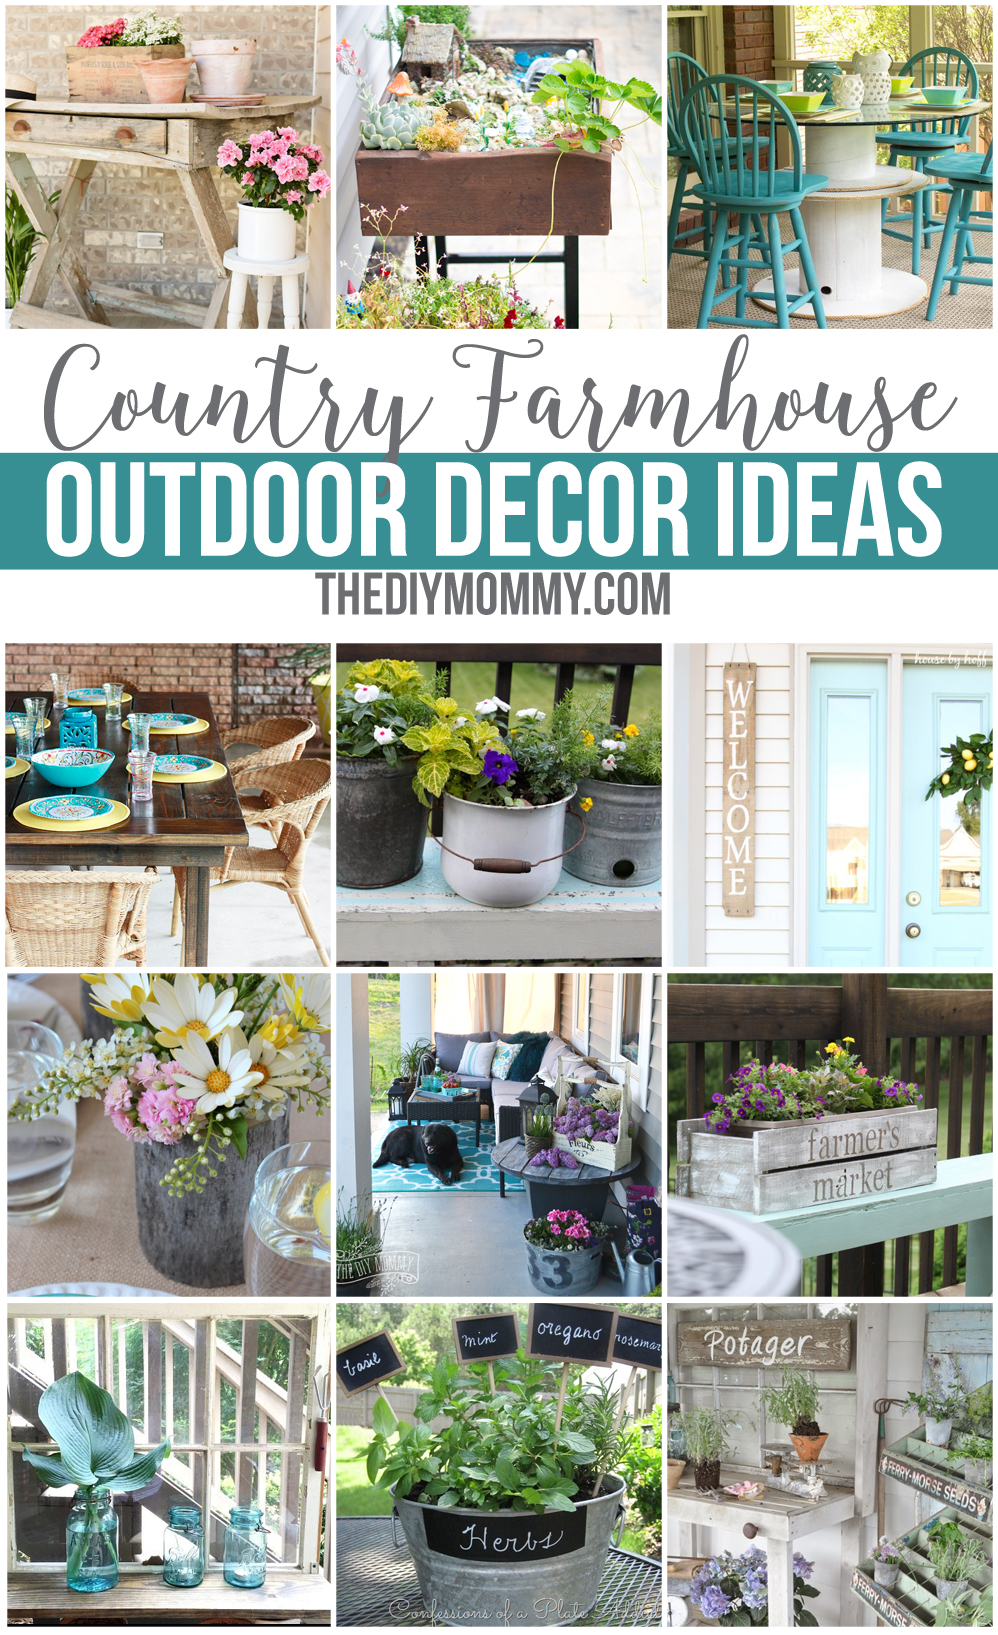 Voguish Your Country Farmhouse Outdoor Dcor Ideas Diy Mommy Diy Outdoor Deck Decorating Ideas Diy Patio Decor Ideas Pinterest Country Farmhouse Outdoor Decor Diy Ideas outdoor Diy Backyard Decor Ideas